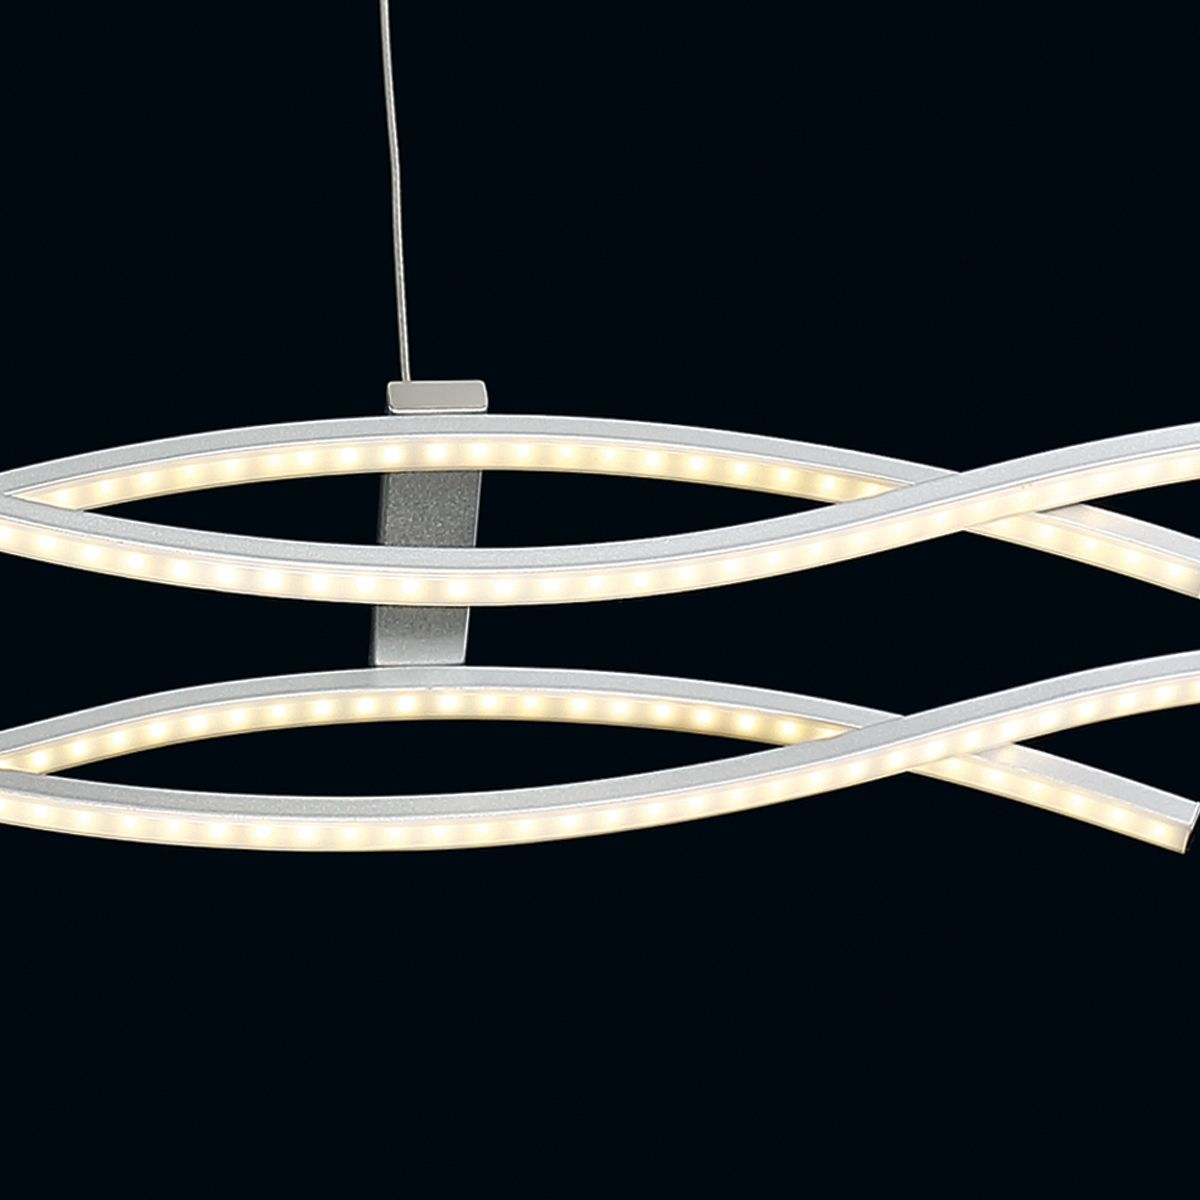 Alcon Lighting 11249 Helix 4 Light Led Architectural